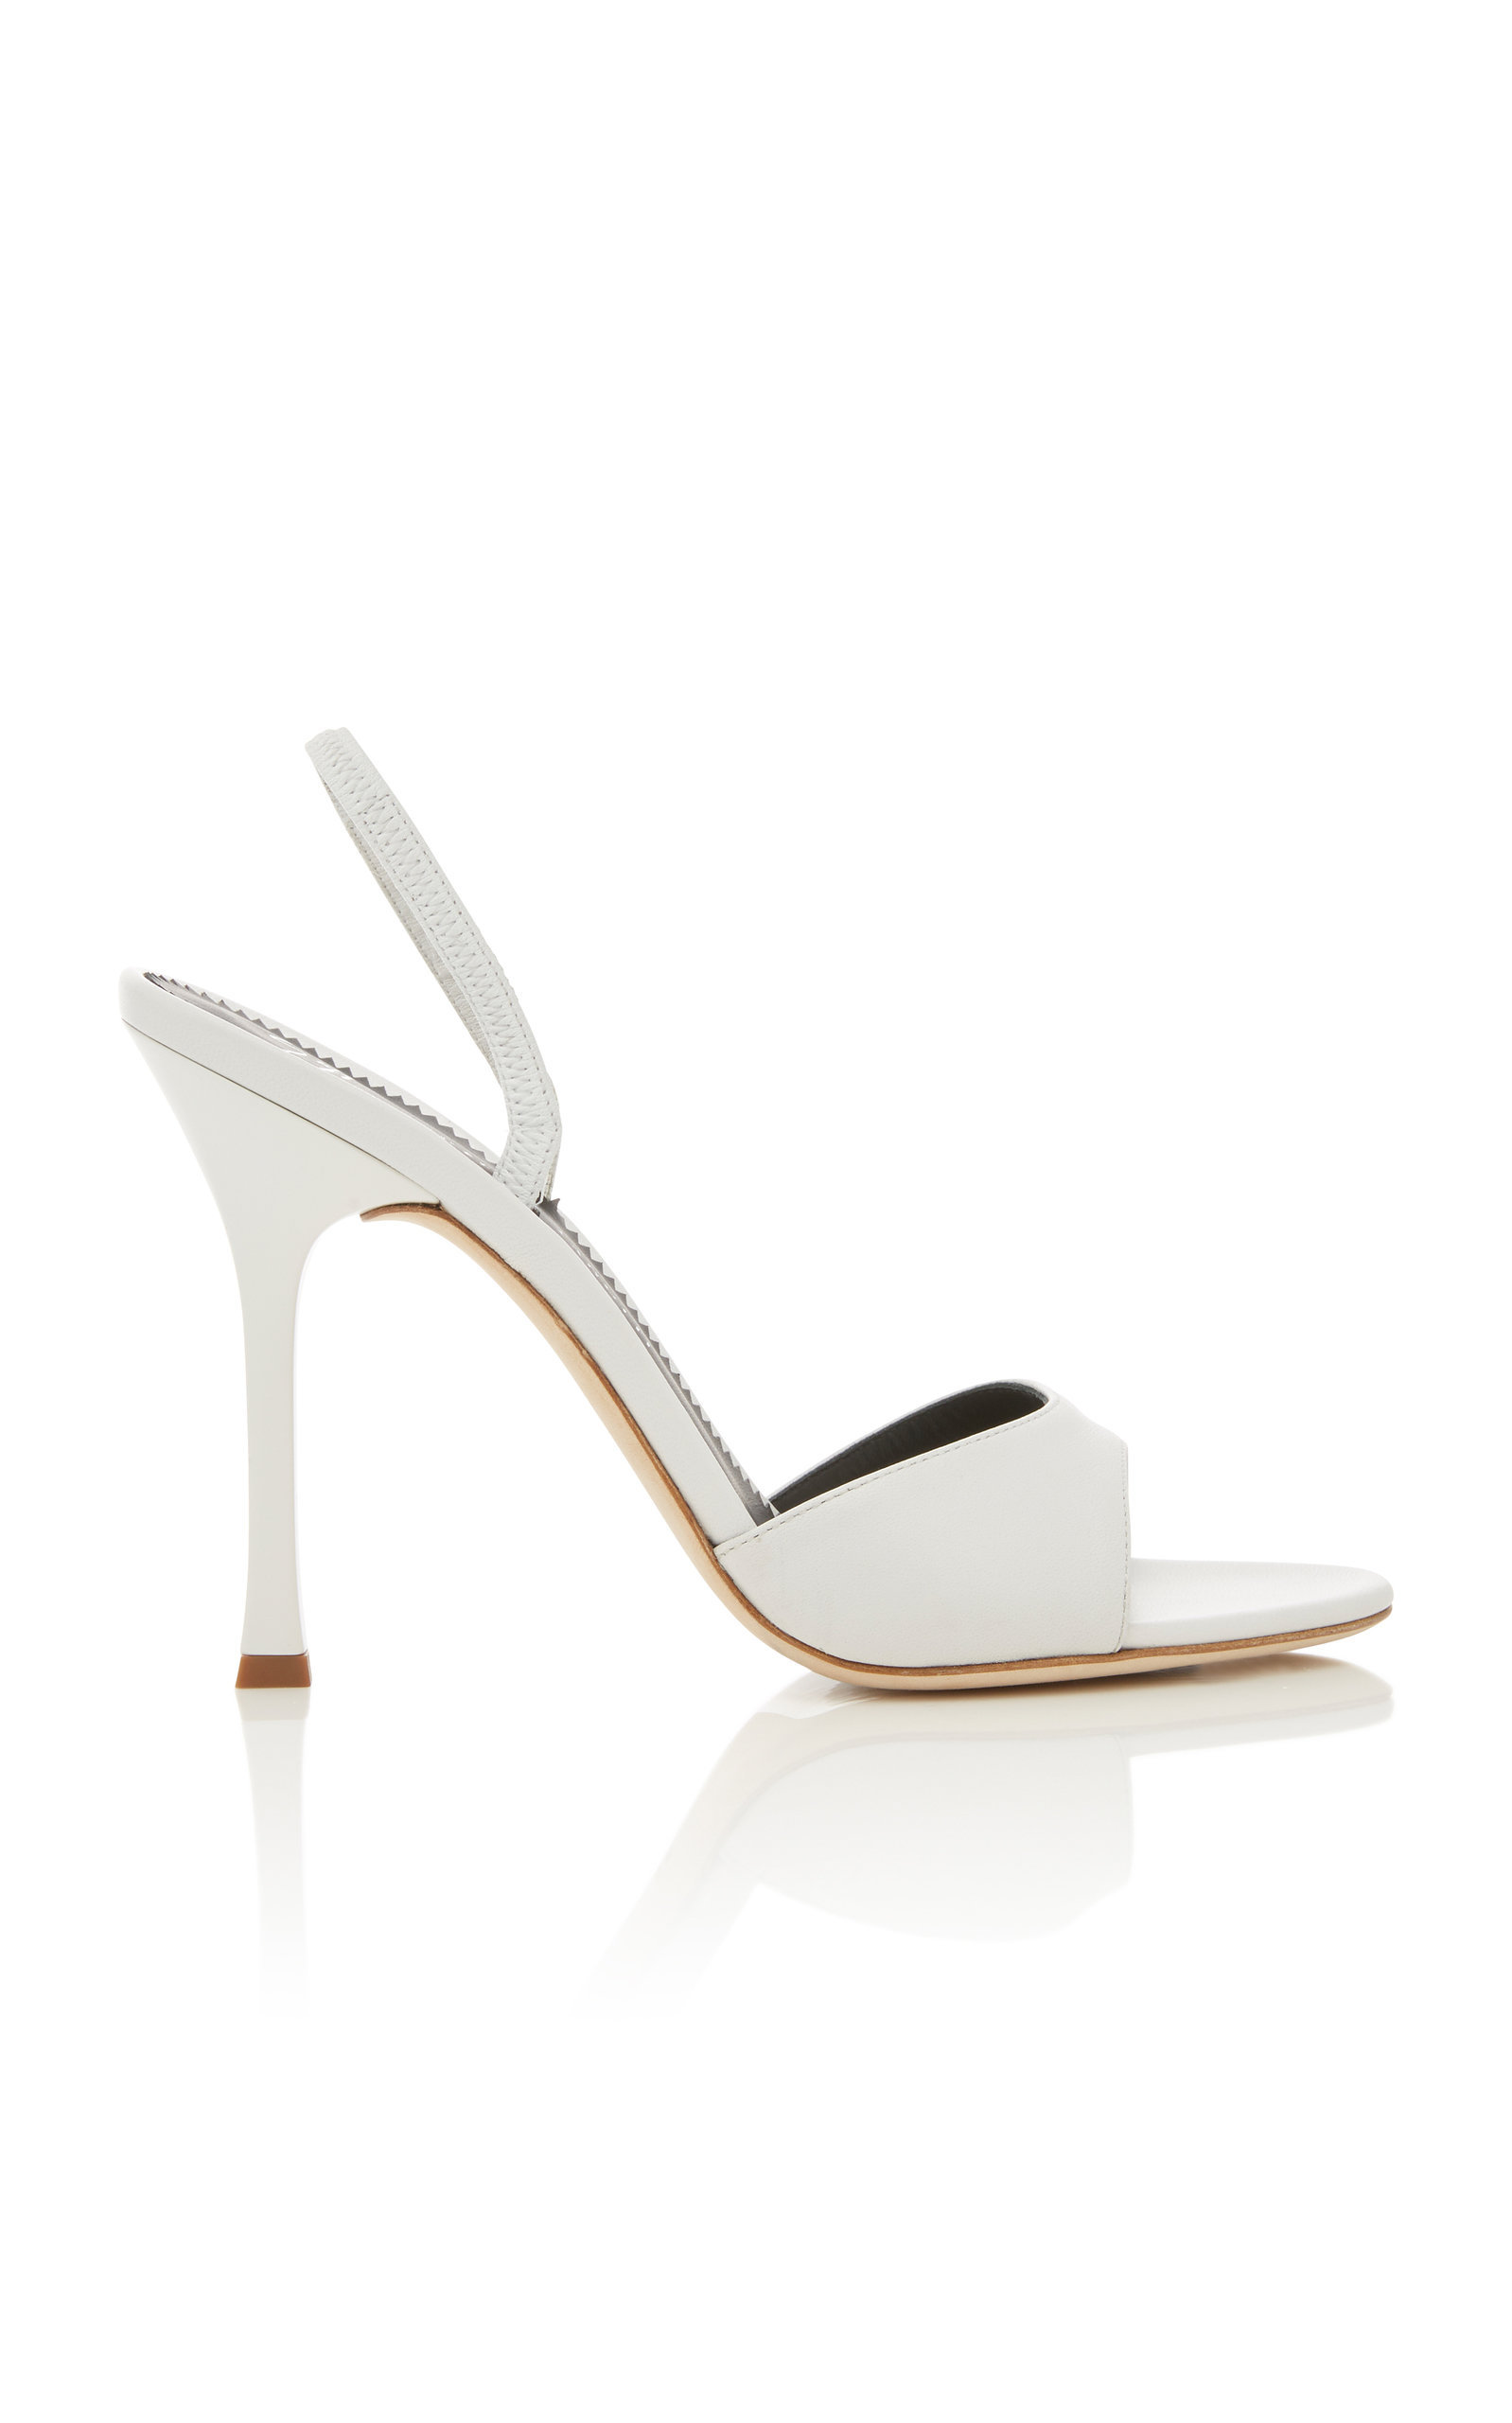 62ee32b8a4344 Giuseppe Zanotti Leather Slingback Sandals In White | ModeSens